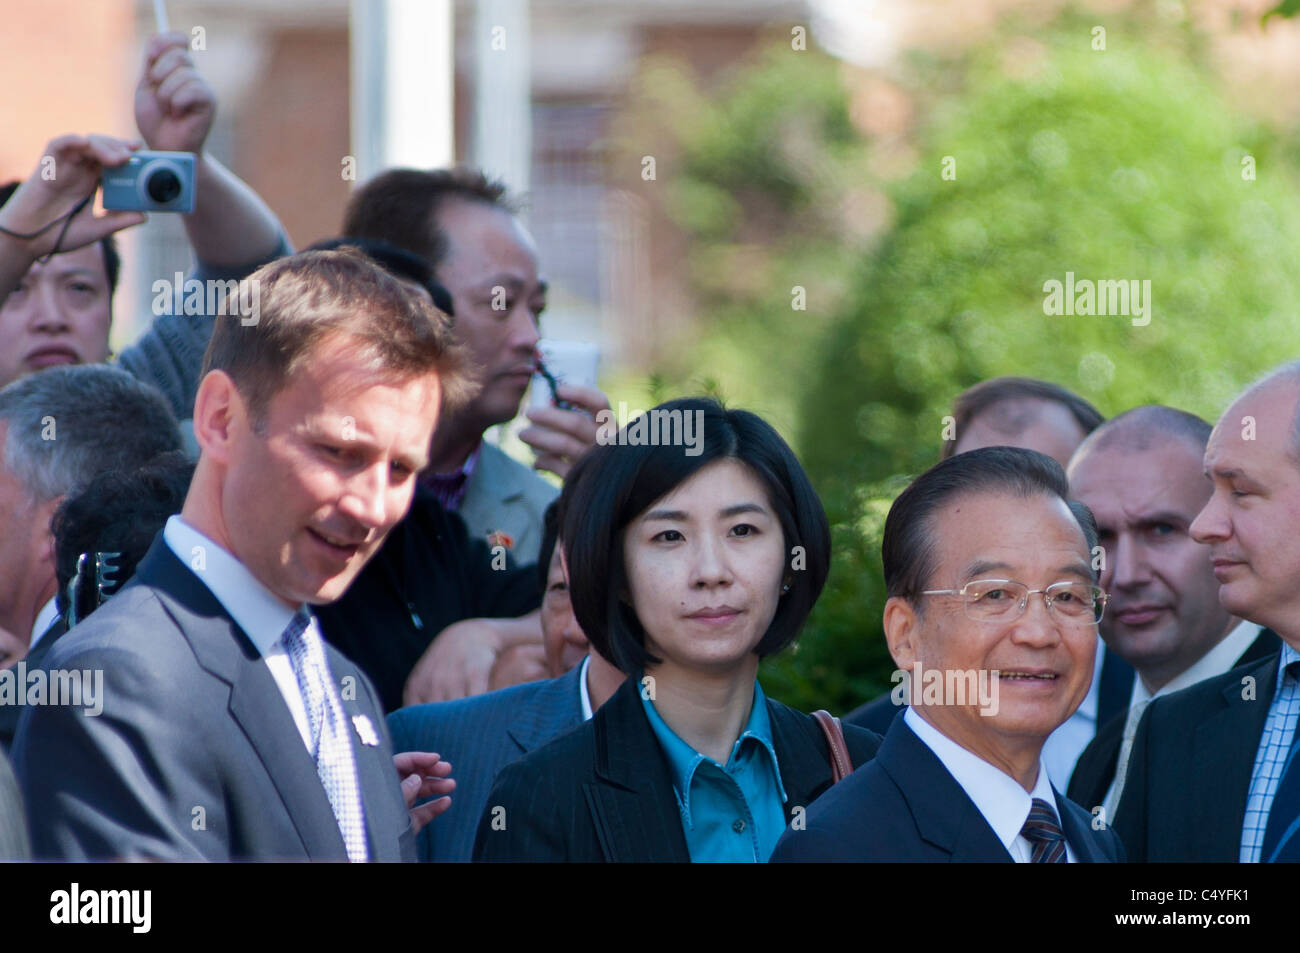 Chinese Prime Minister Wen Jiabao and interpreter with Culture secretary Jeremy Hunt visiting Stratford upon Avon, - Stock Image